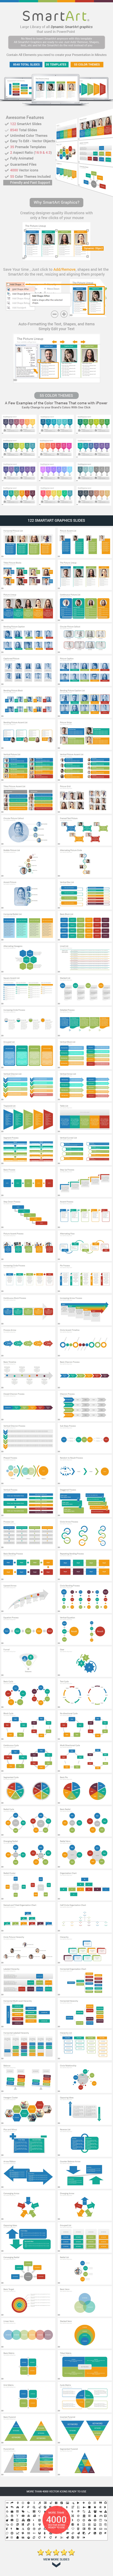 smartart library powerpoint presentation templaterojdark, Presentation templates